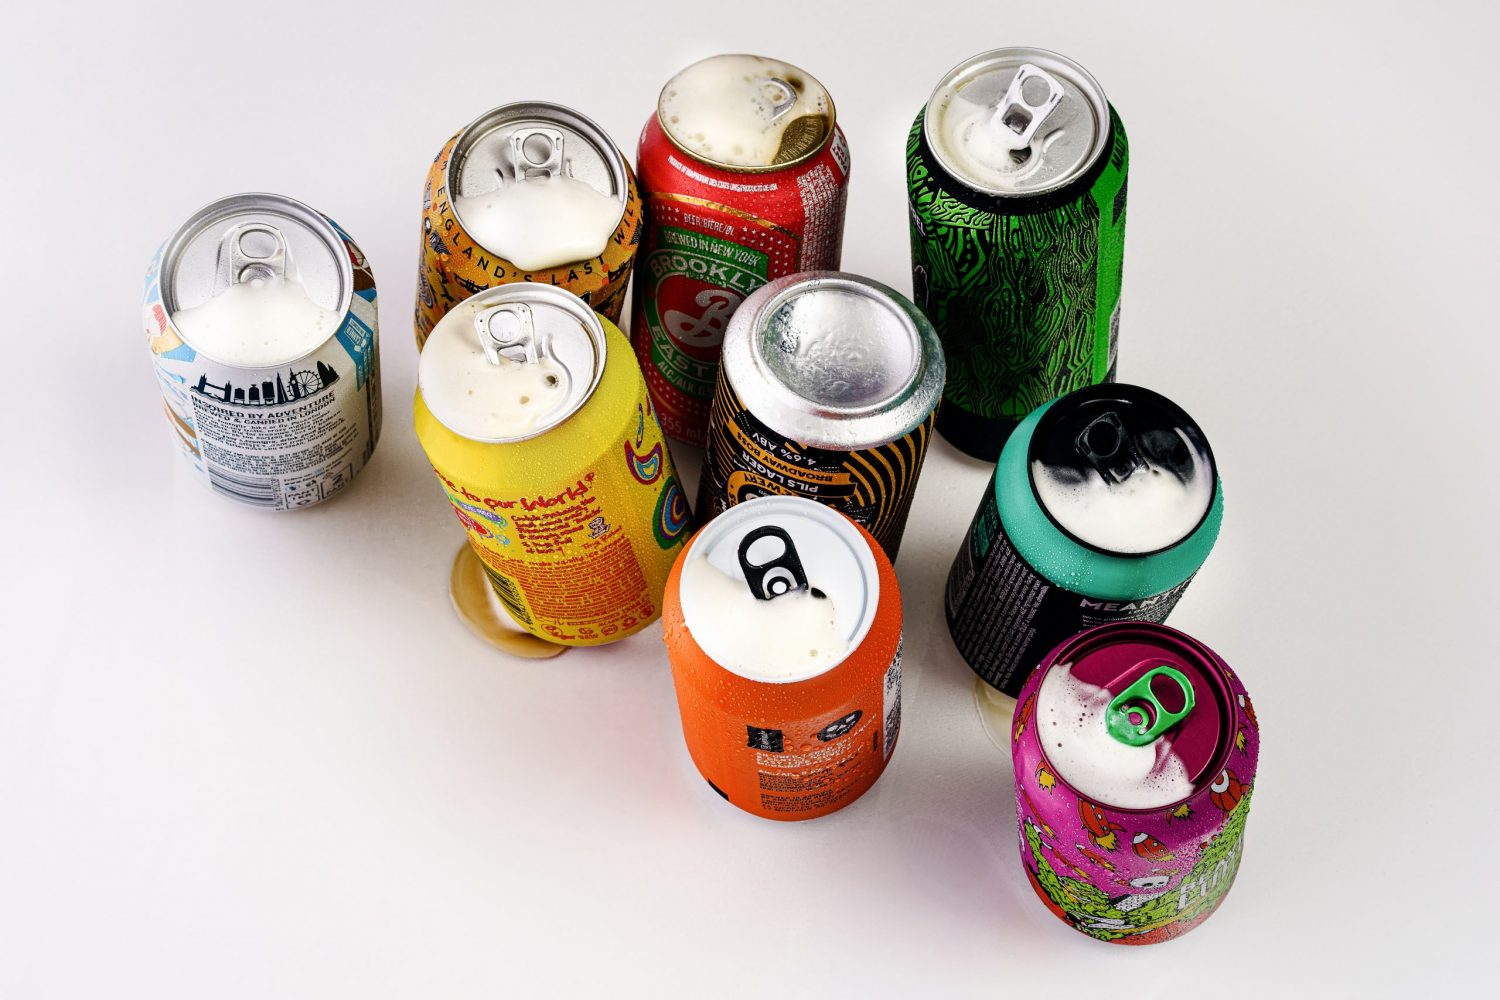 image of different sodas